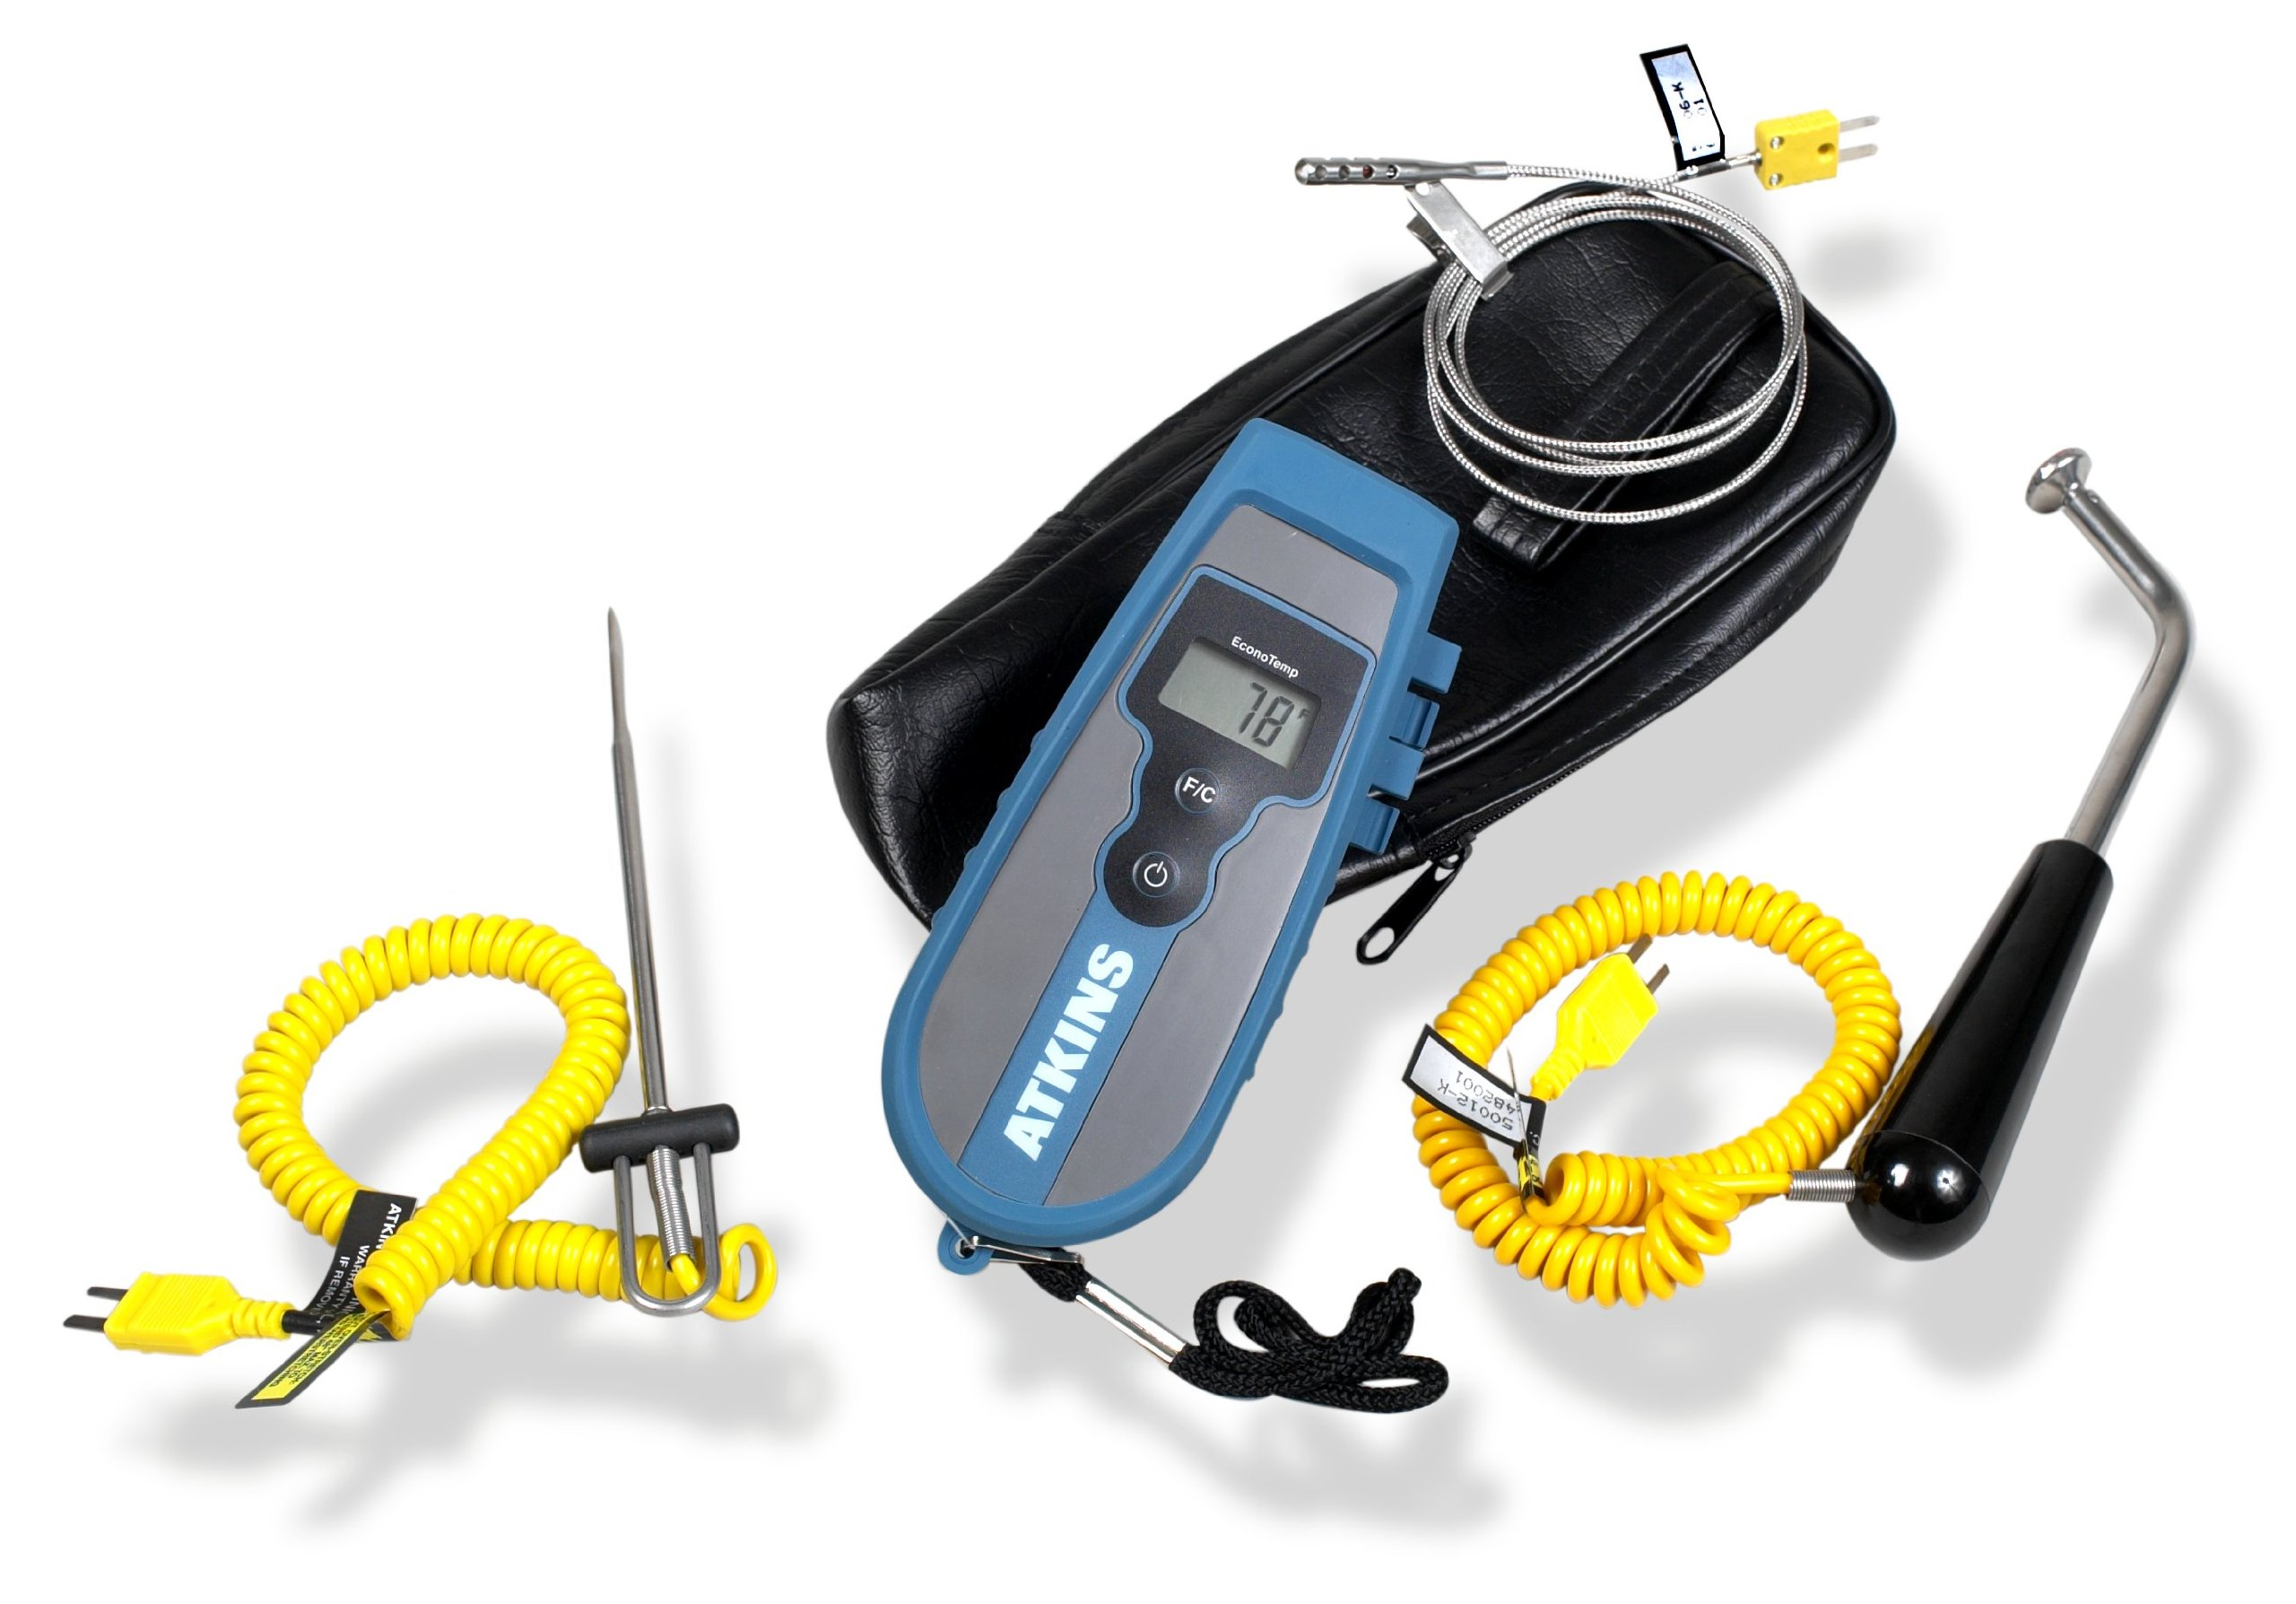 Cooper-Atkins 93013-K EconoTemp Thermocouple Kit, 3 Probes and 1 Soft Carrying Case